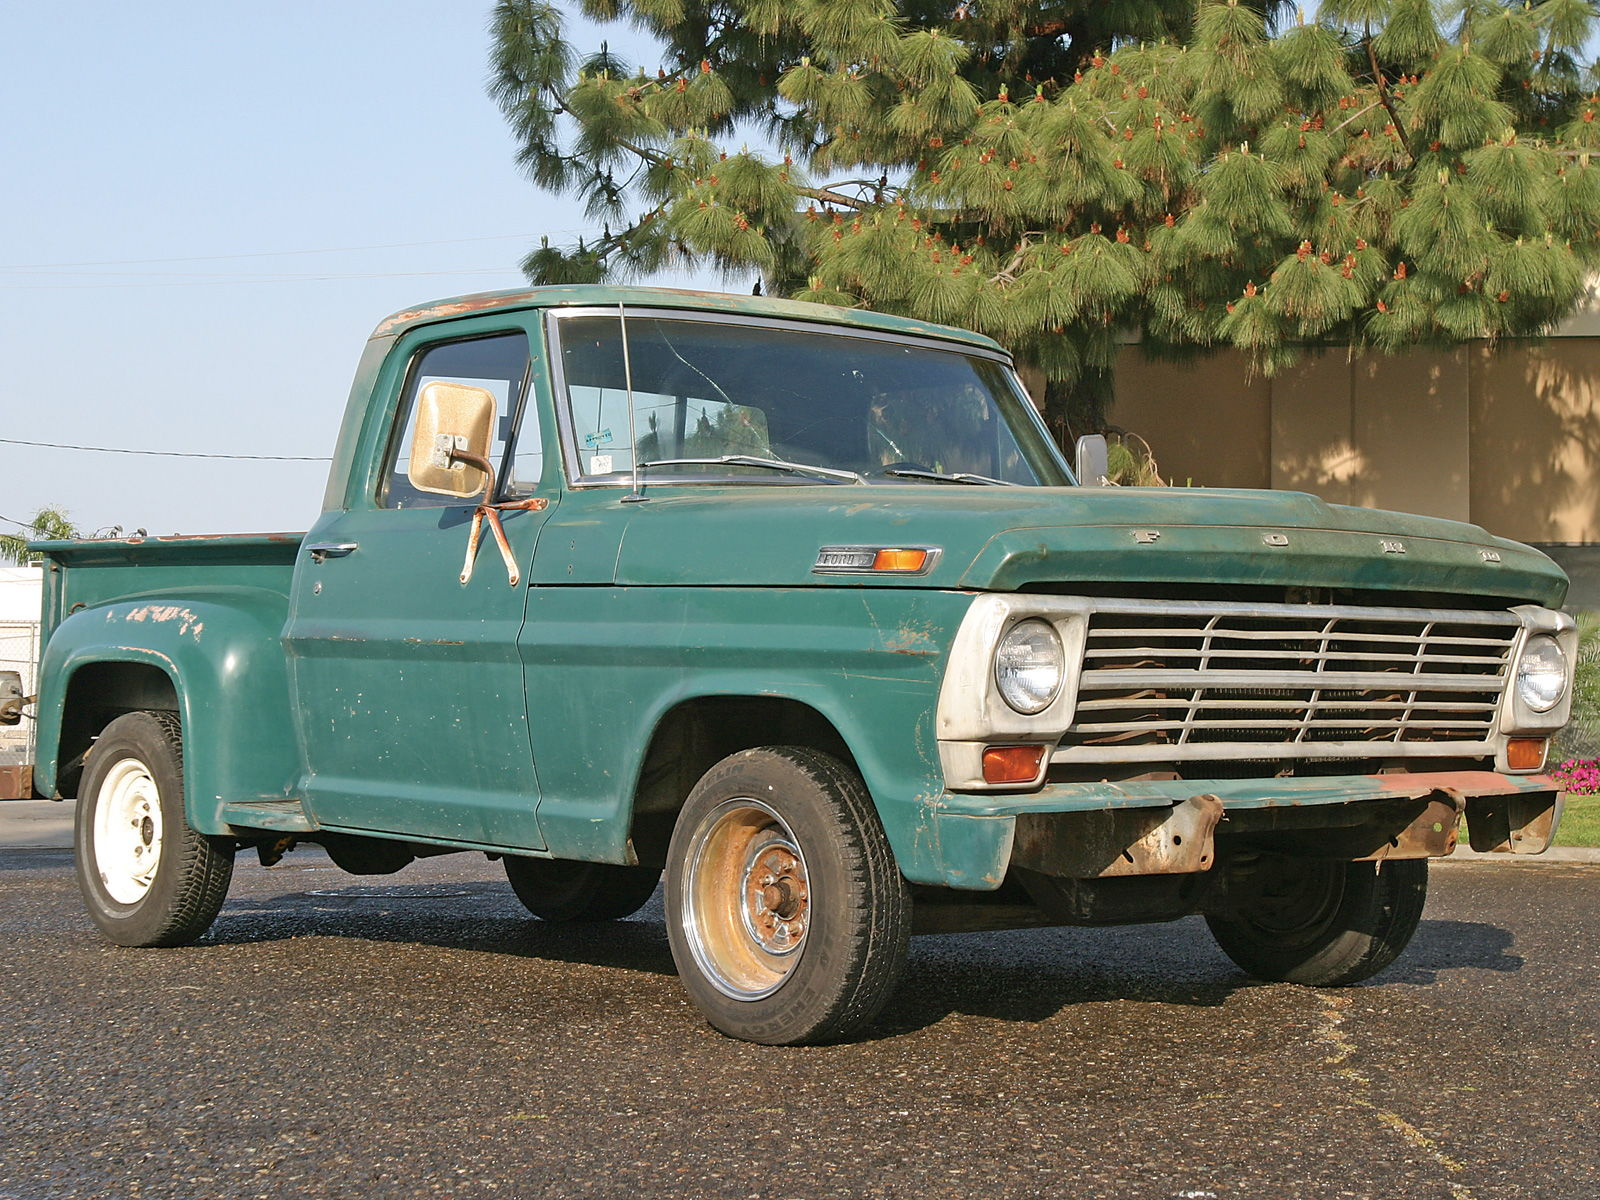 5 Things to Look at When Buying a Vintage Ford Truck - Ford Truck ...